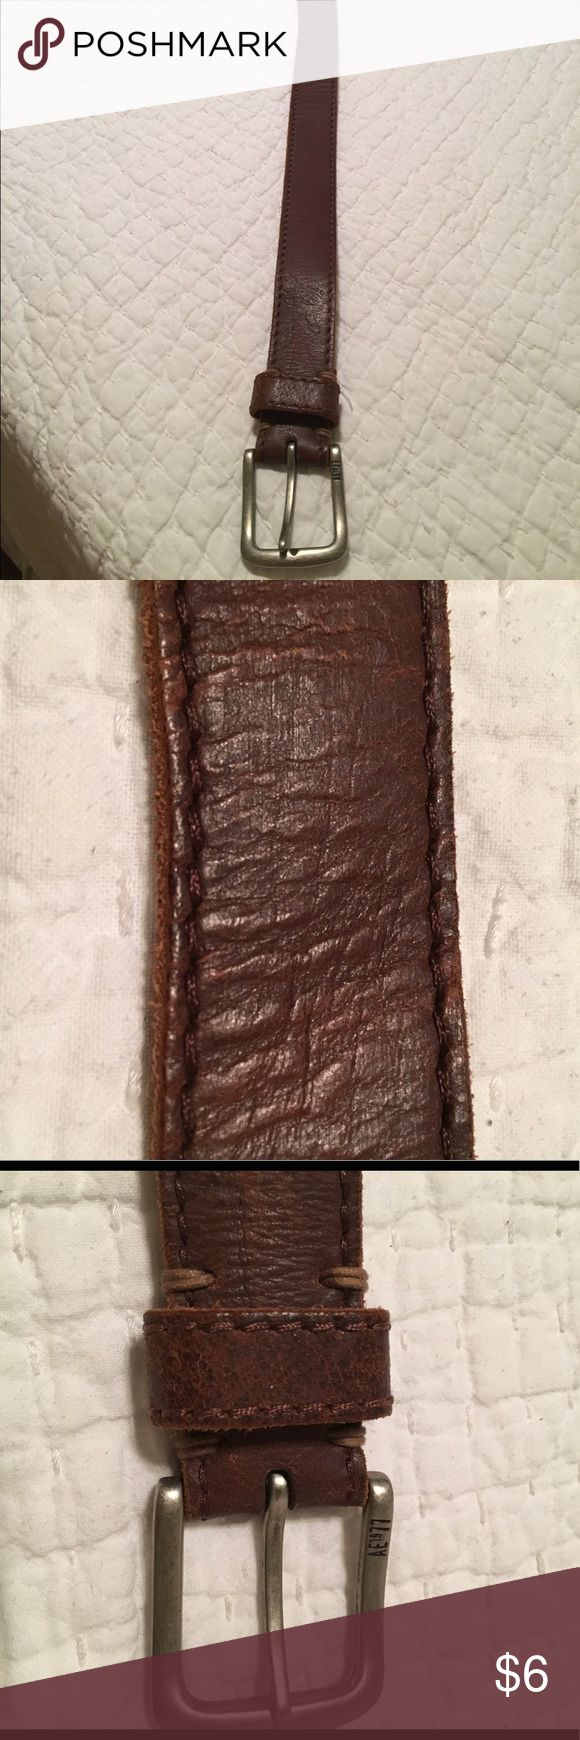 American Outfitter all Leather belt. Size 32. Great condition. Perfect for work or with jeans. American Eagle Outfitters Accessories Belts